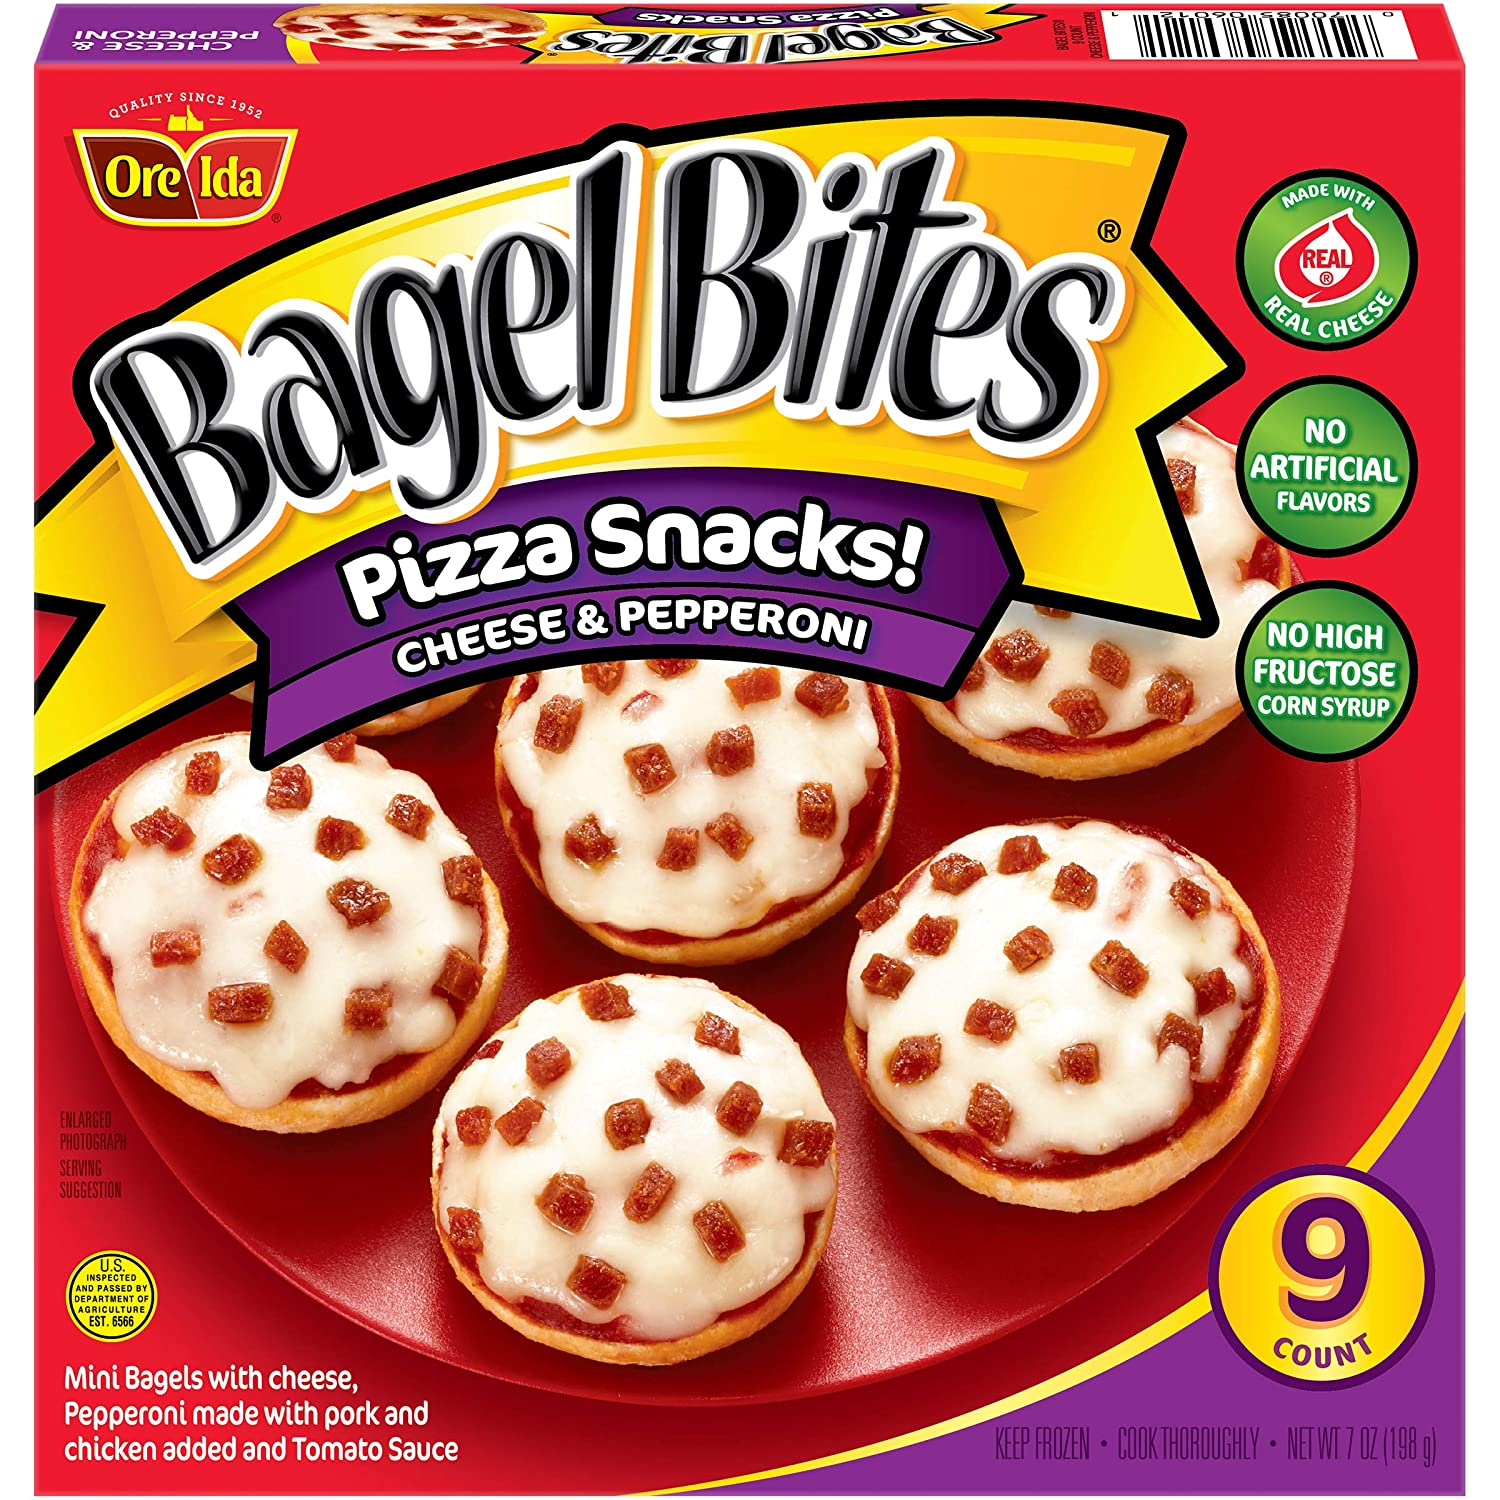 Bagel Bites, Cheese and Pepperoni, 9 Count, 7 oz (Frozen): Amazon.com: Grocery & Gourmet Food